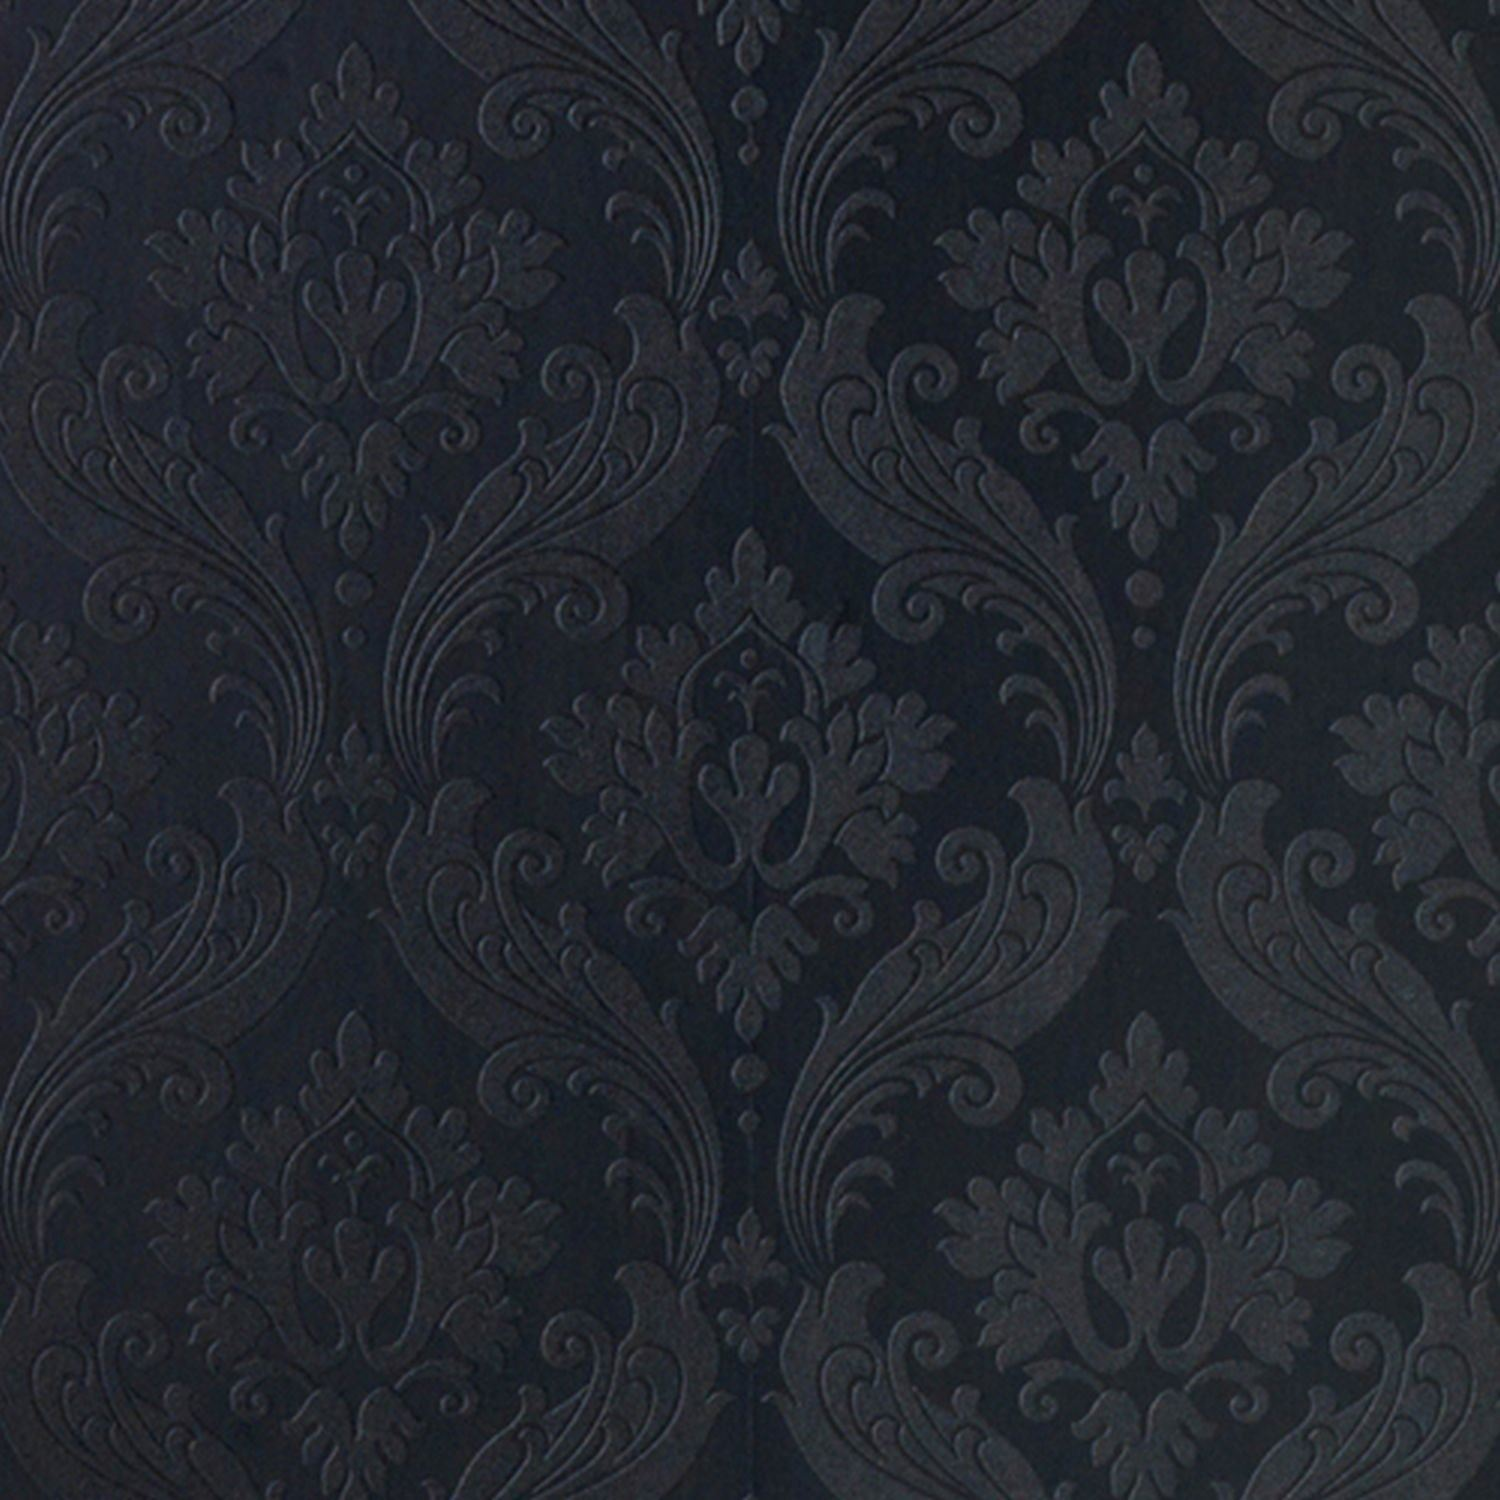 graham and brown designer wallpaper ebay. Black Bedroom Furniture Sets. Home Design Ideas